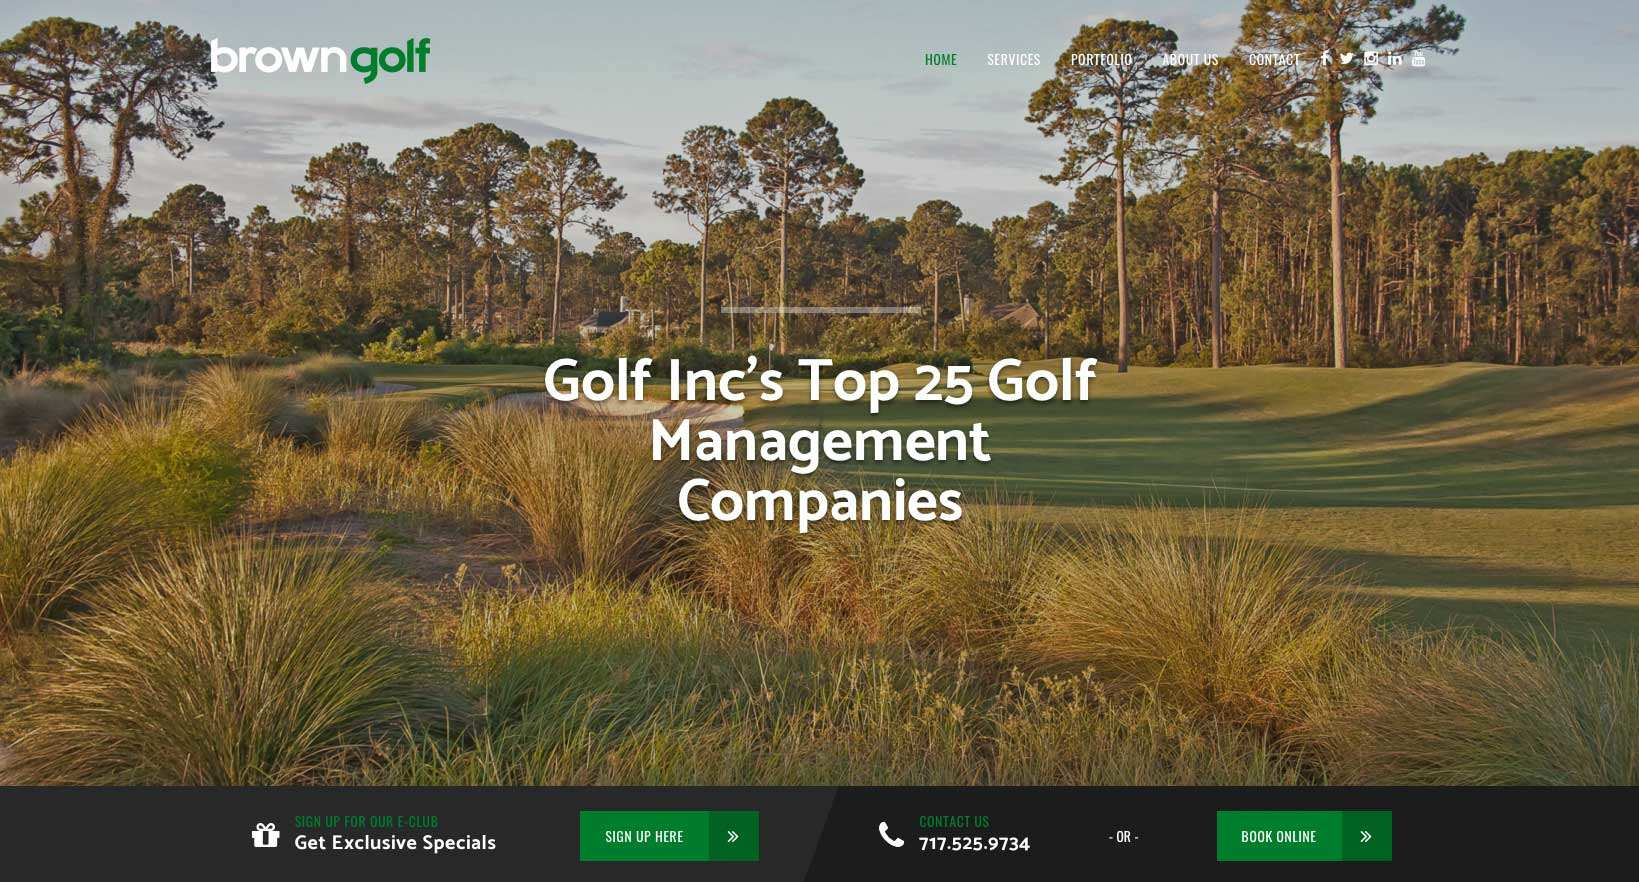 brown-golf-management website